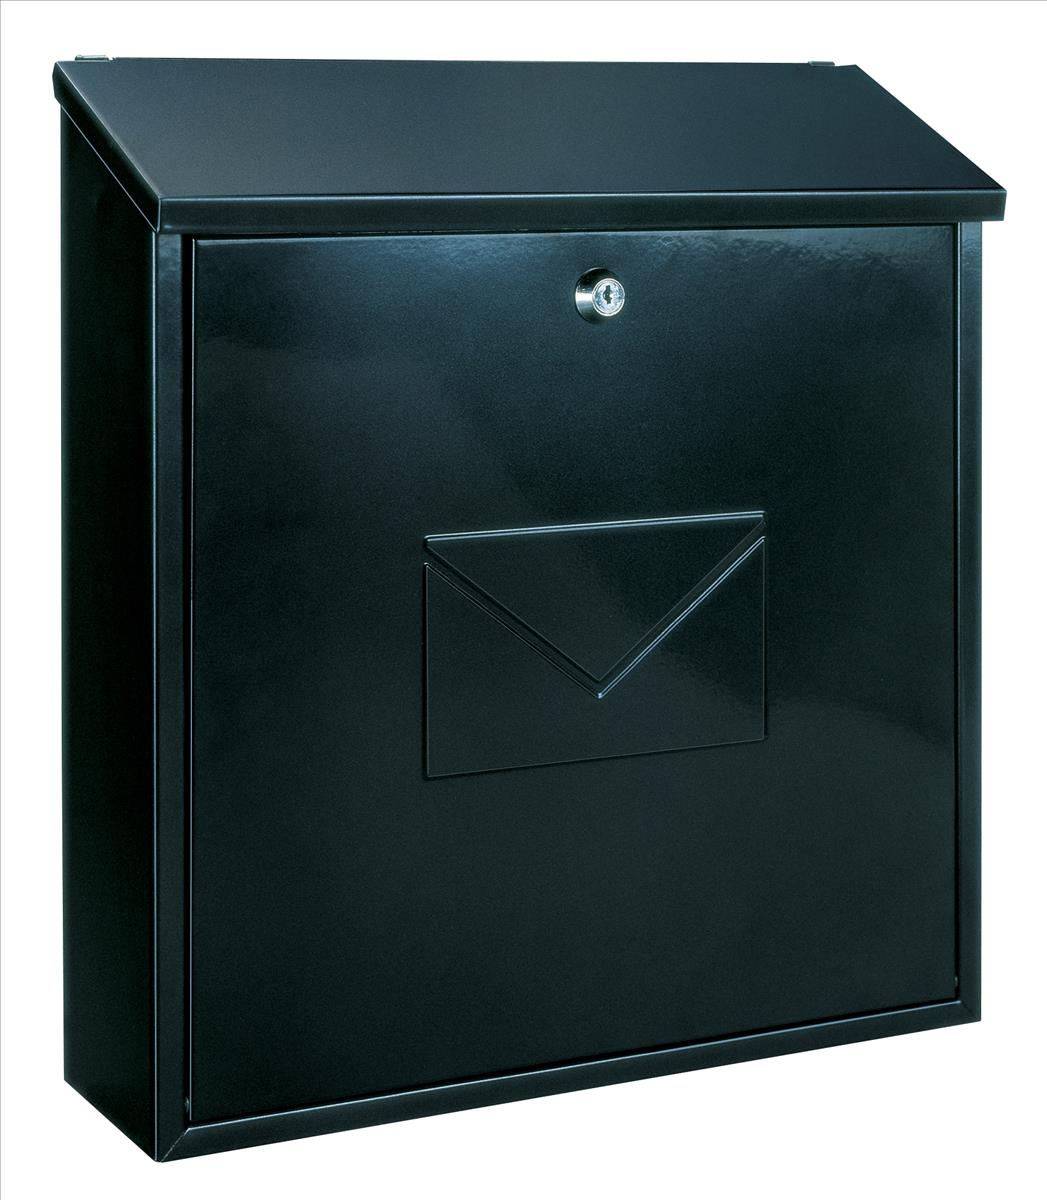 Image for Rottner Firenze Mailbox Steel Embossed 360x30mm Opening W365xD115xH400mm Black Ref T03426 (0)